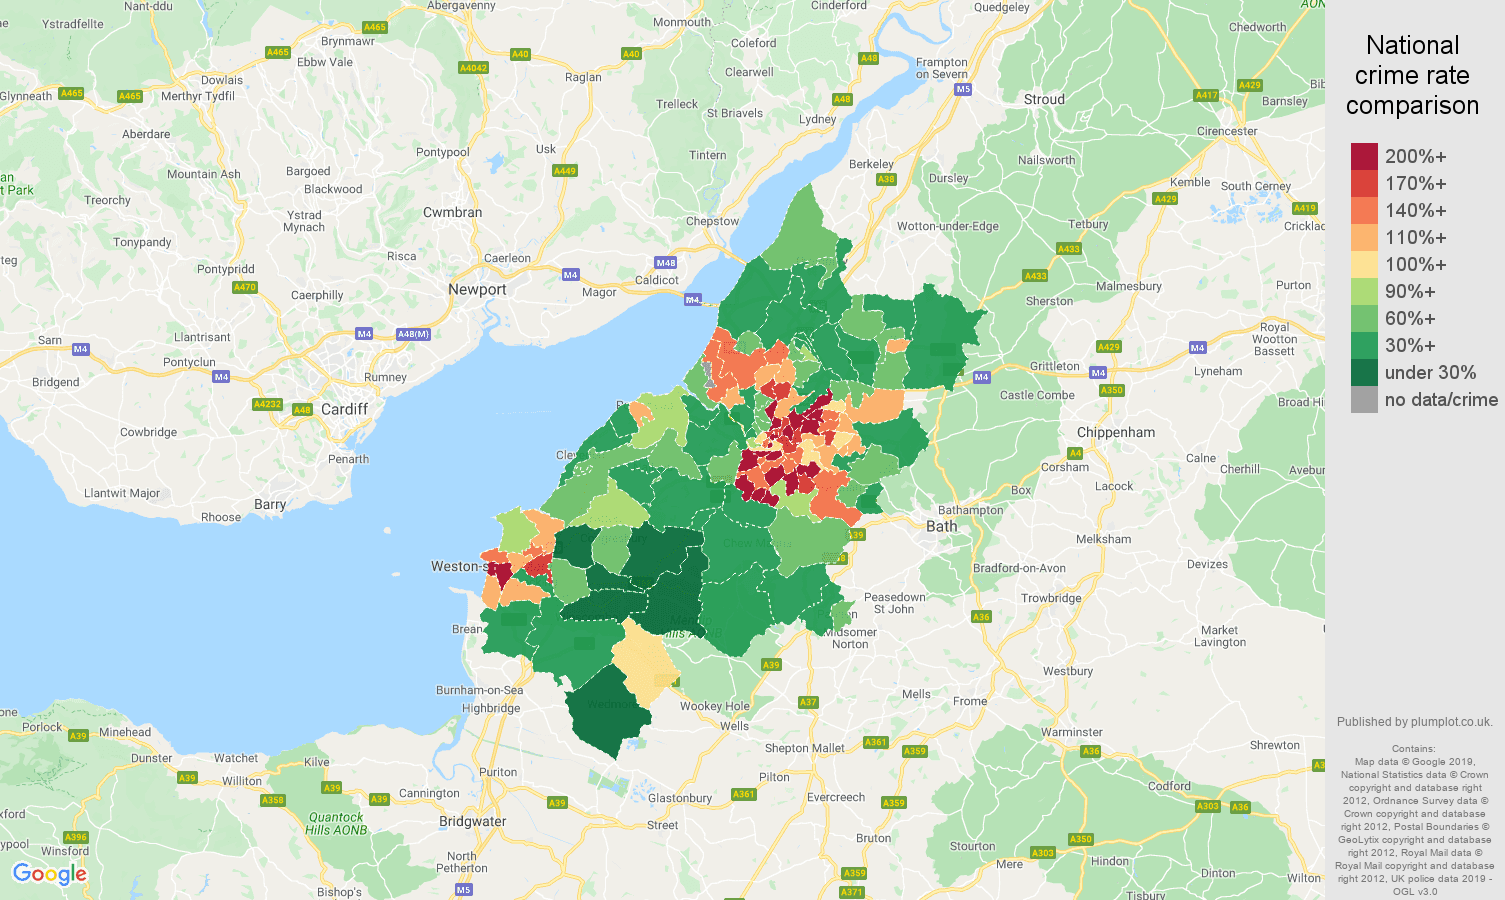 Bristol public order crime rate comparison map